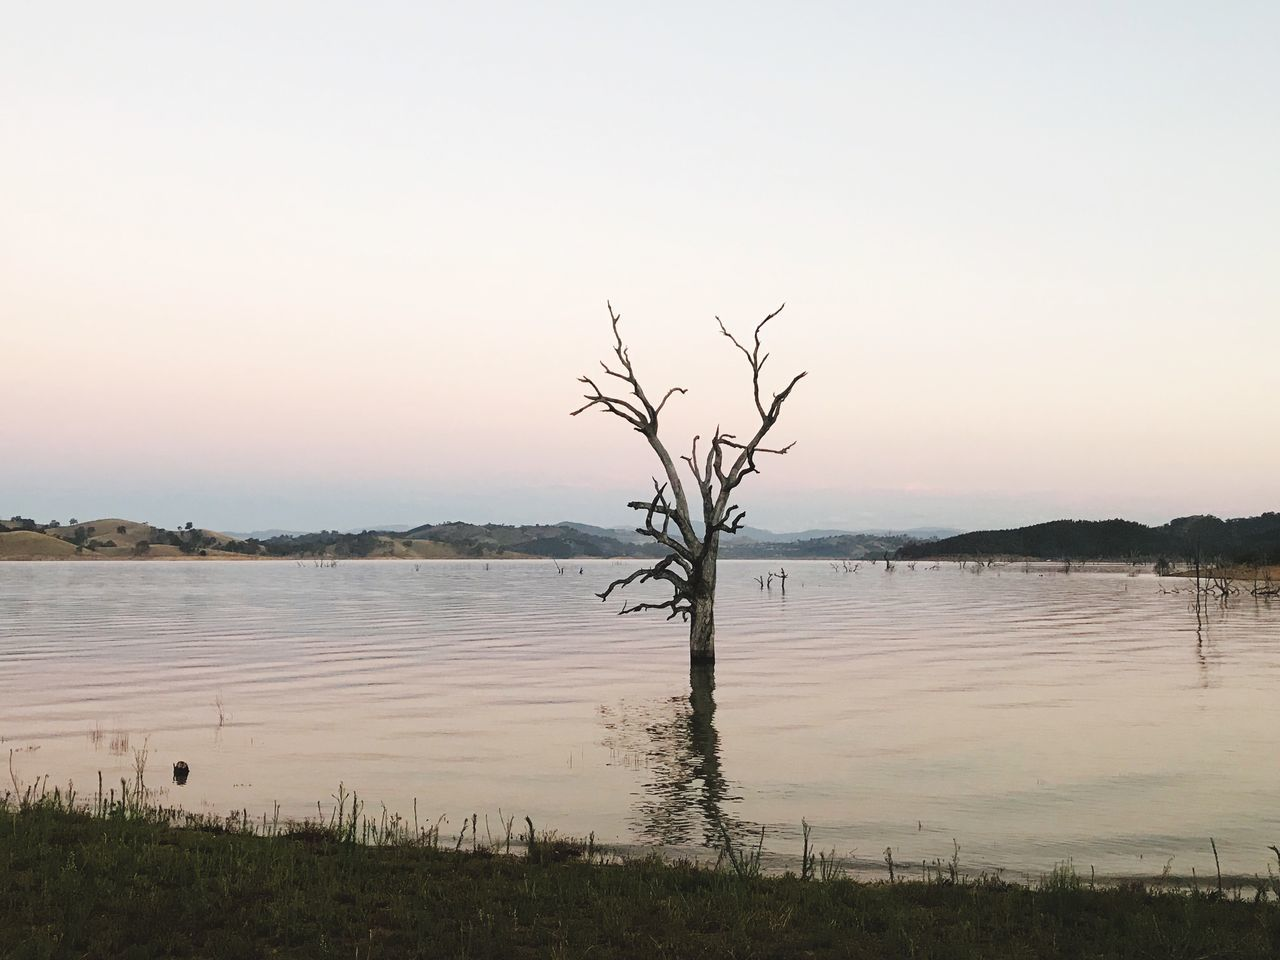 tranquility, bare tree, tranquil scene, nature, outdoors, reflection, tree, beauty in nature, water, lone, lake, scenics, landscape, no people, branch, sunset, clear sky, sky, day